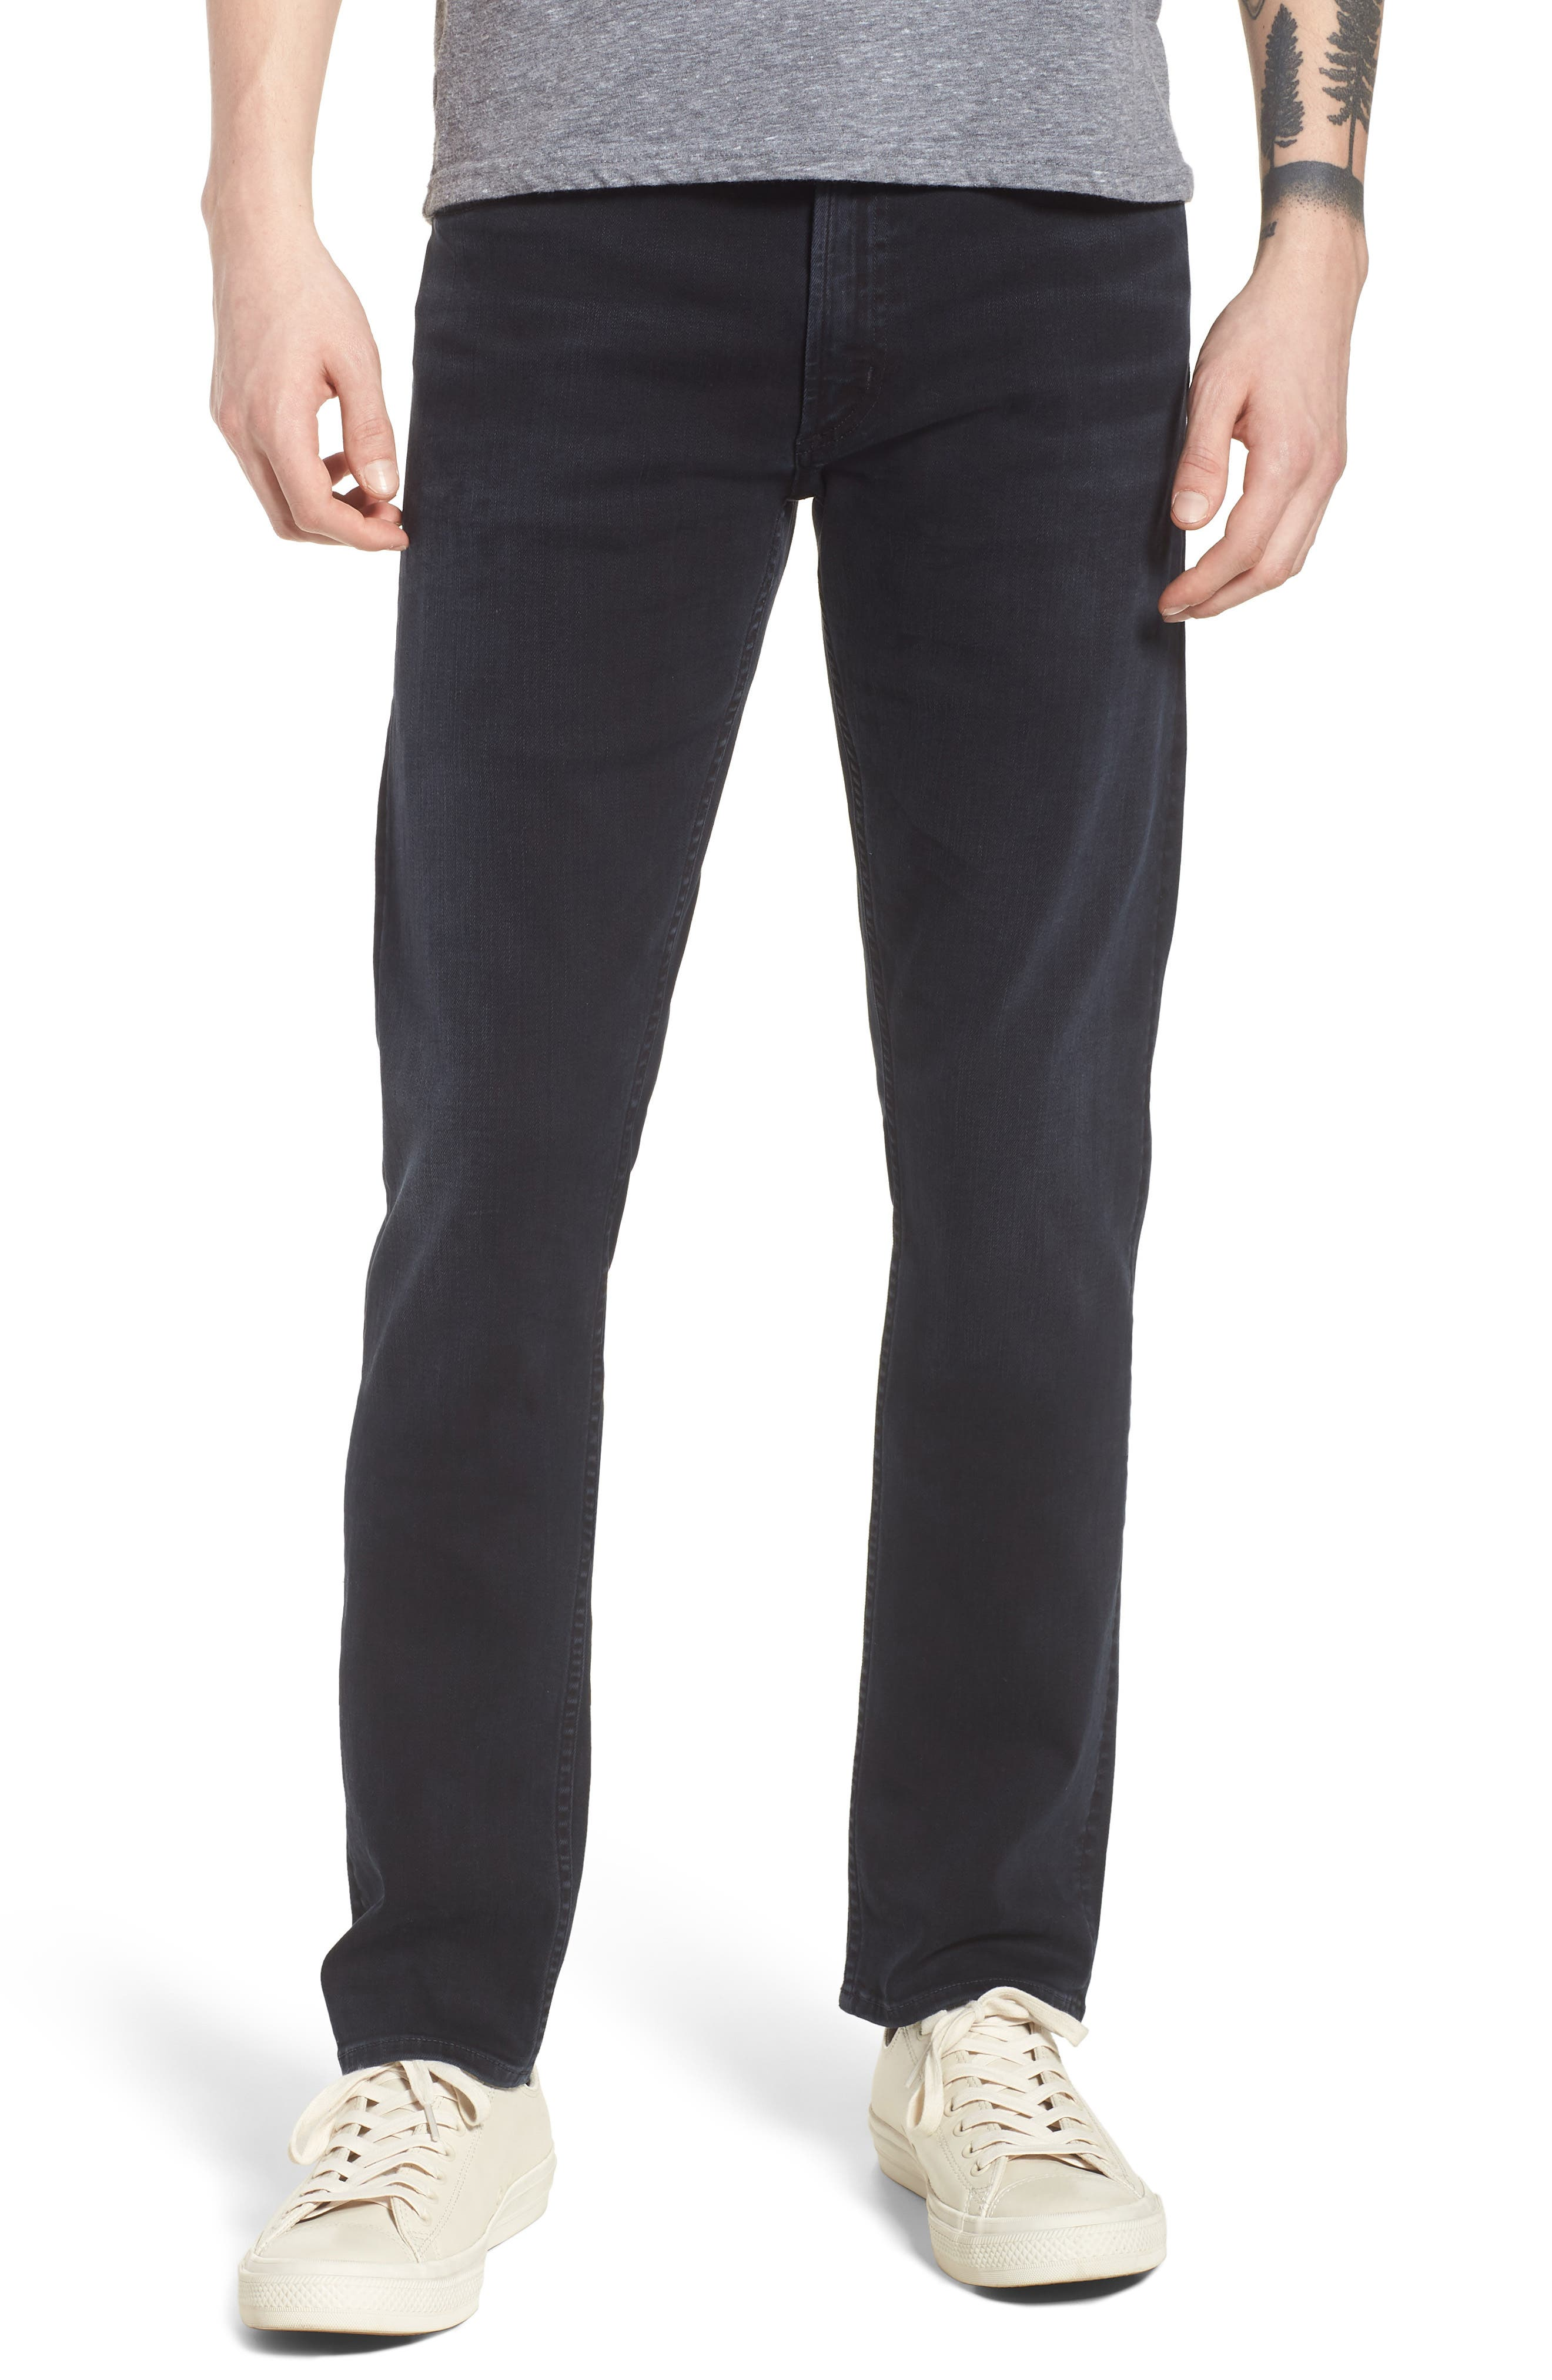 Bowery Slim Fit Jeans,                         Main,                         color, 483